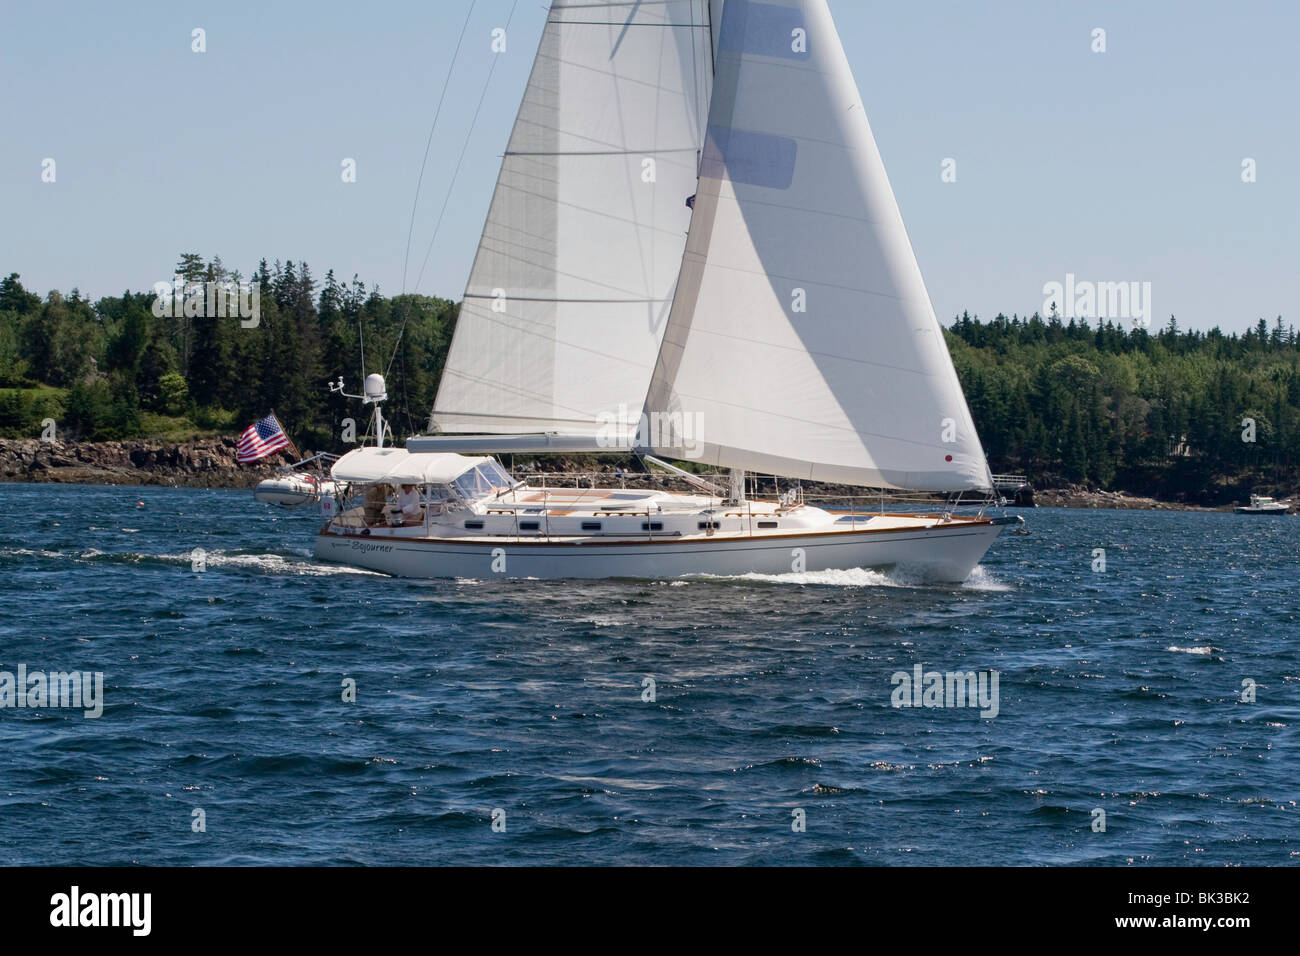 A Tartan 4600 sails into Rockland Harbor, Maine - Stock Image